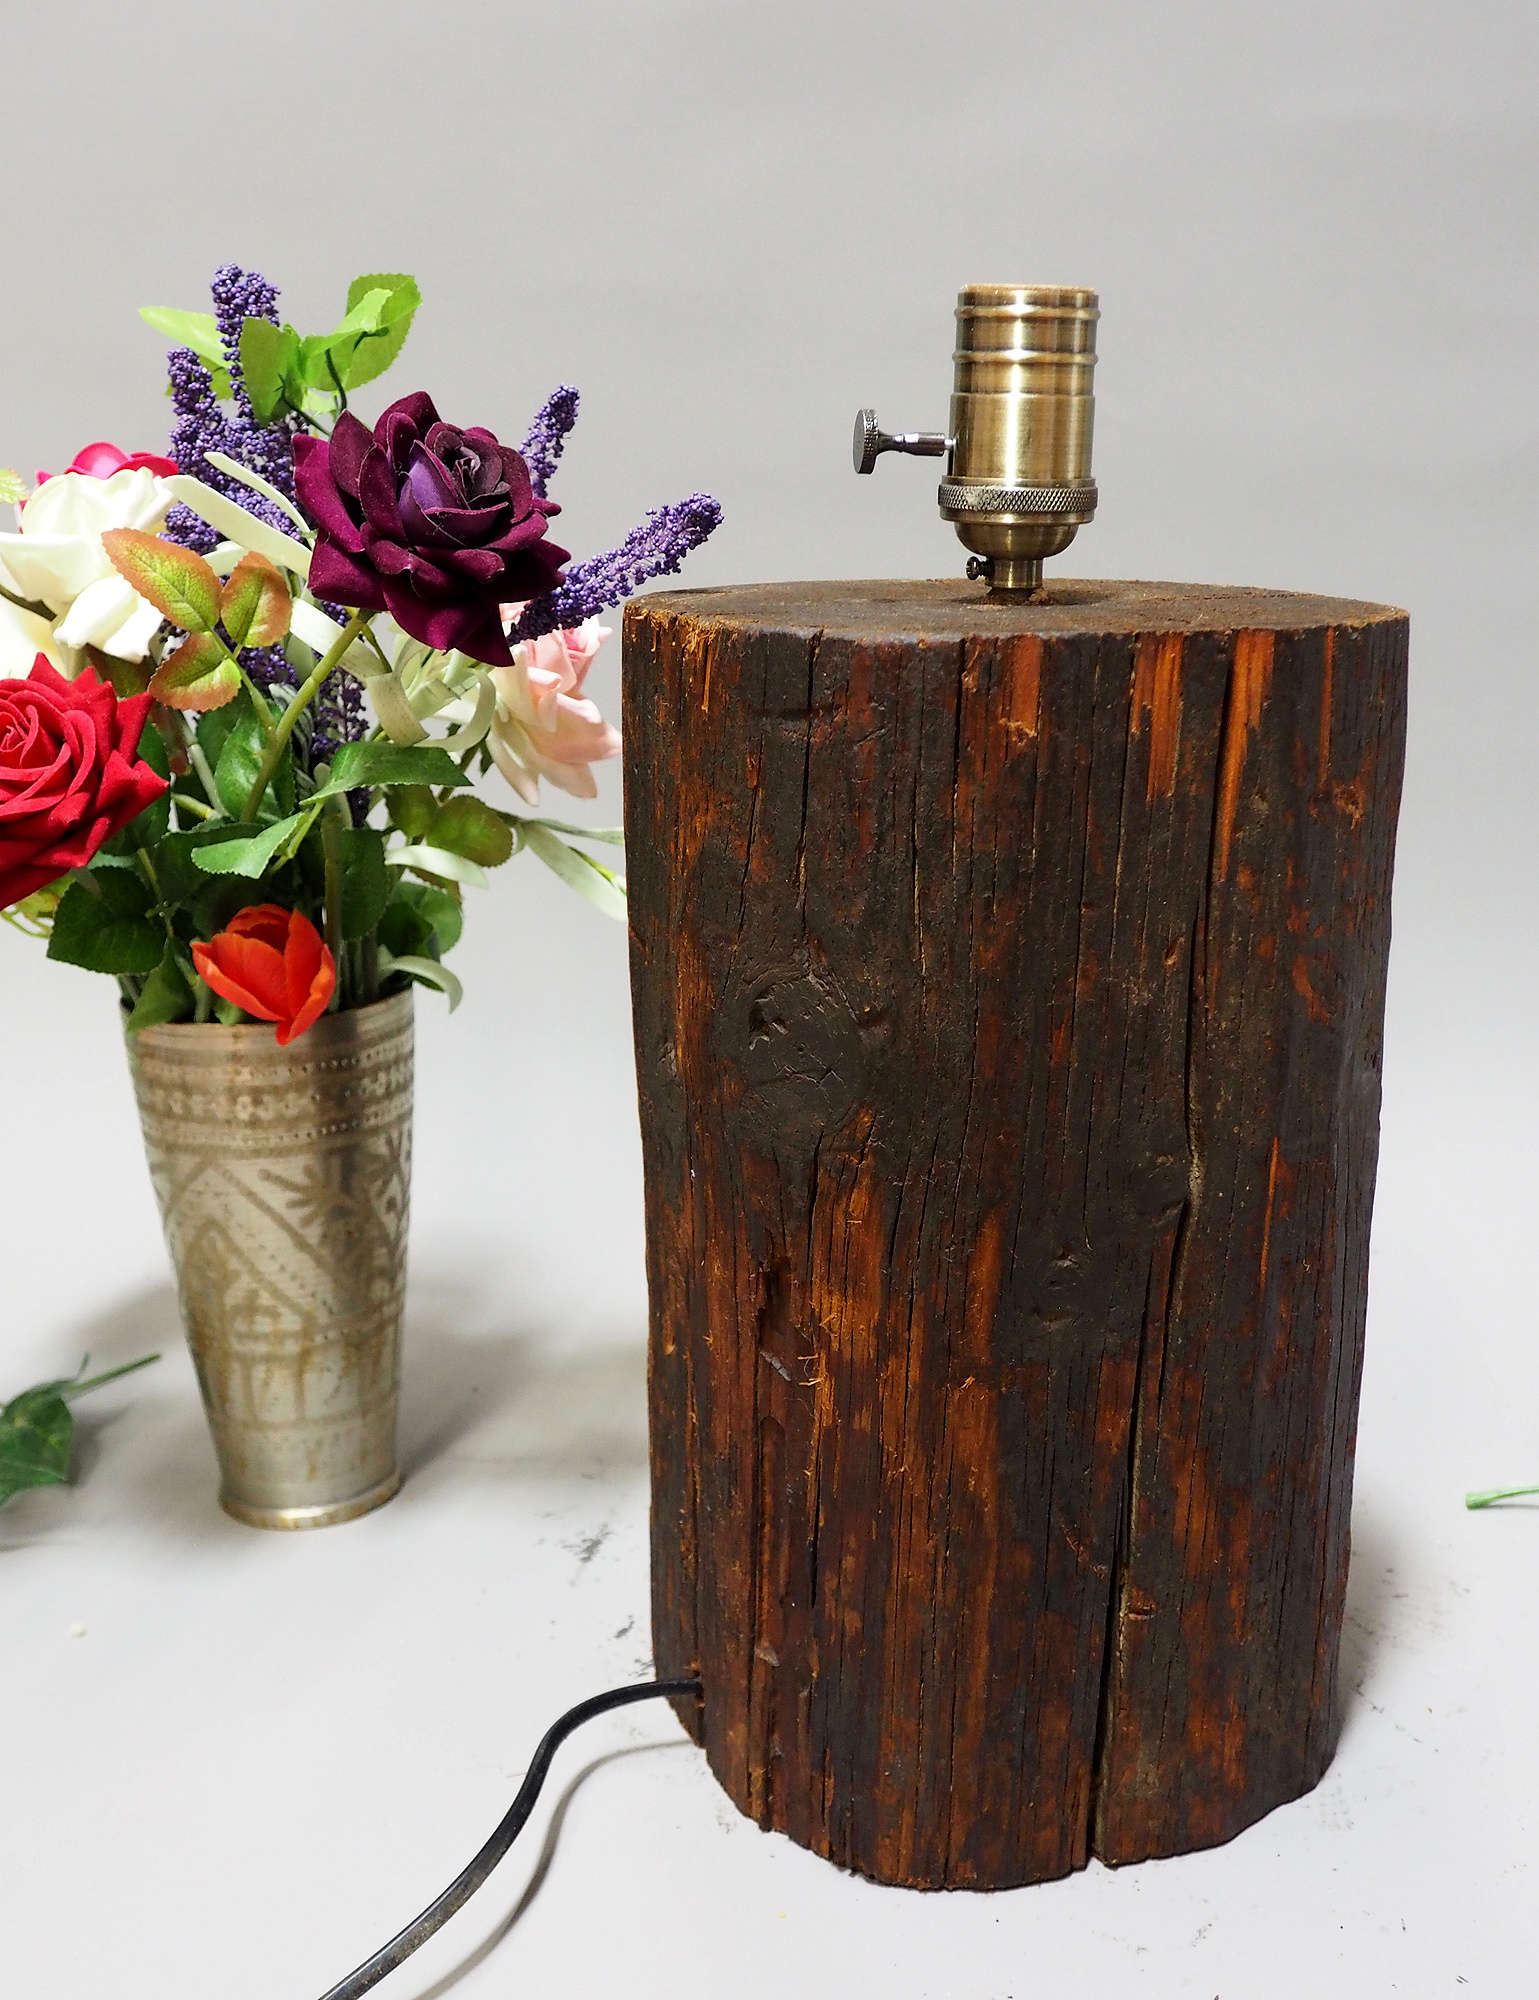 antique wooden table lamp lamp base from Nuristan Afghanistan Swat velly pakistan No:NU5